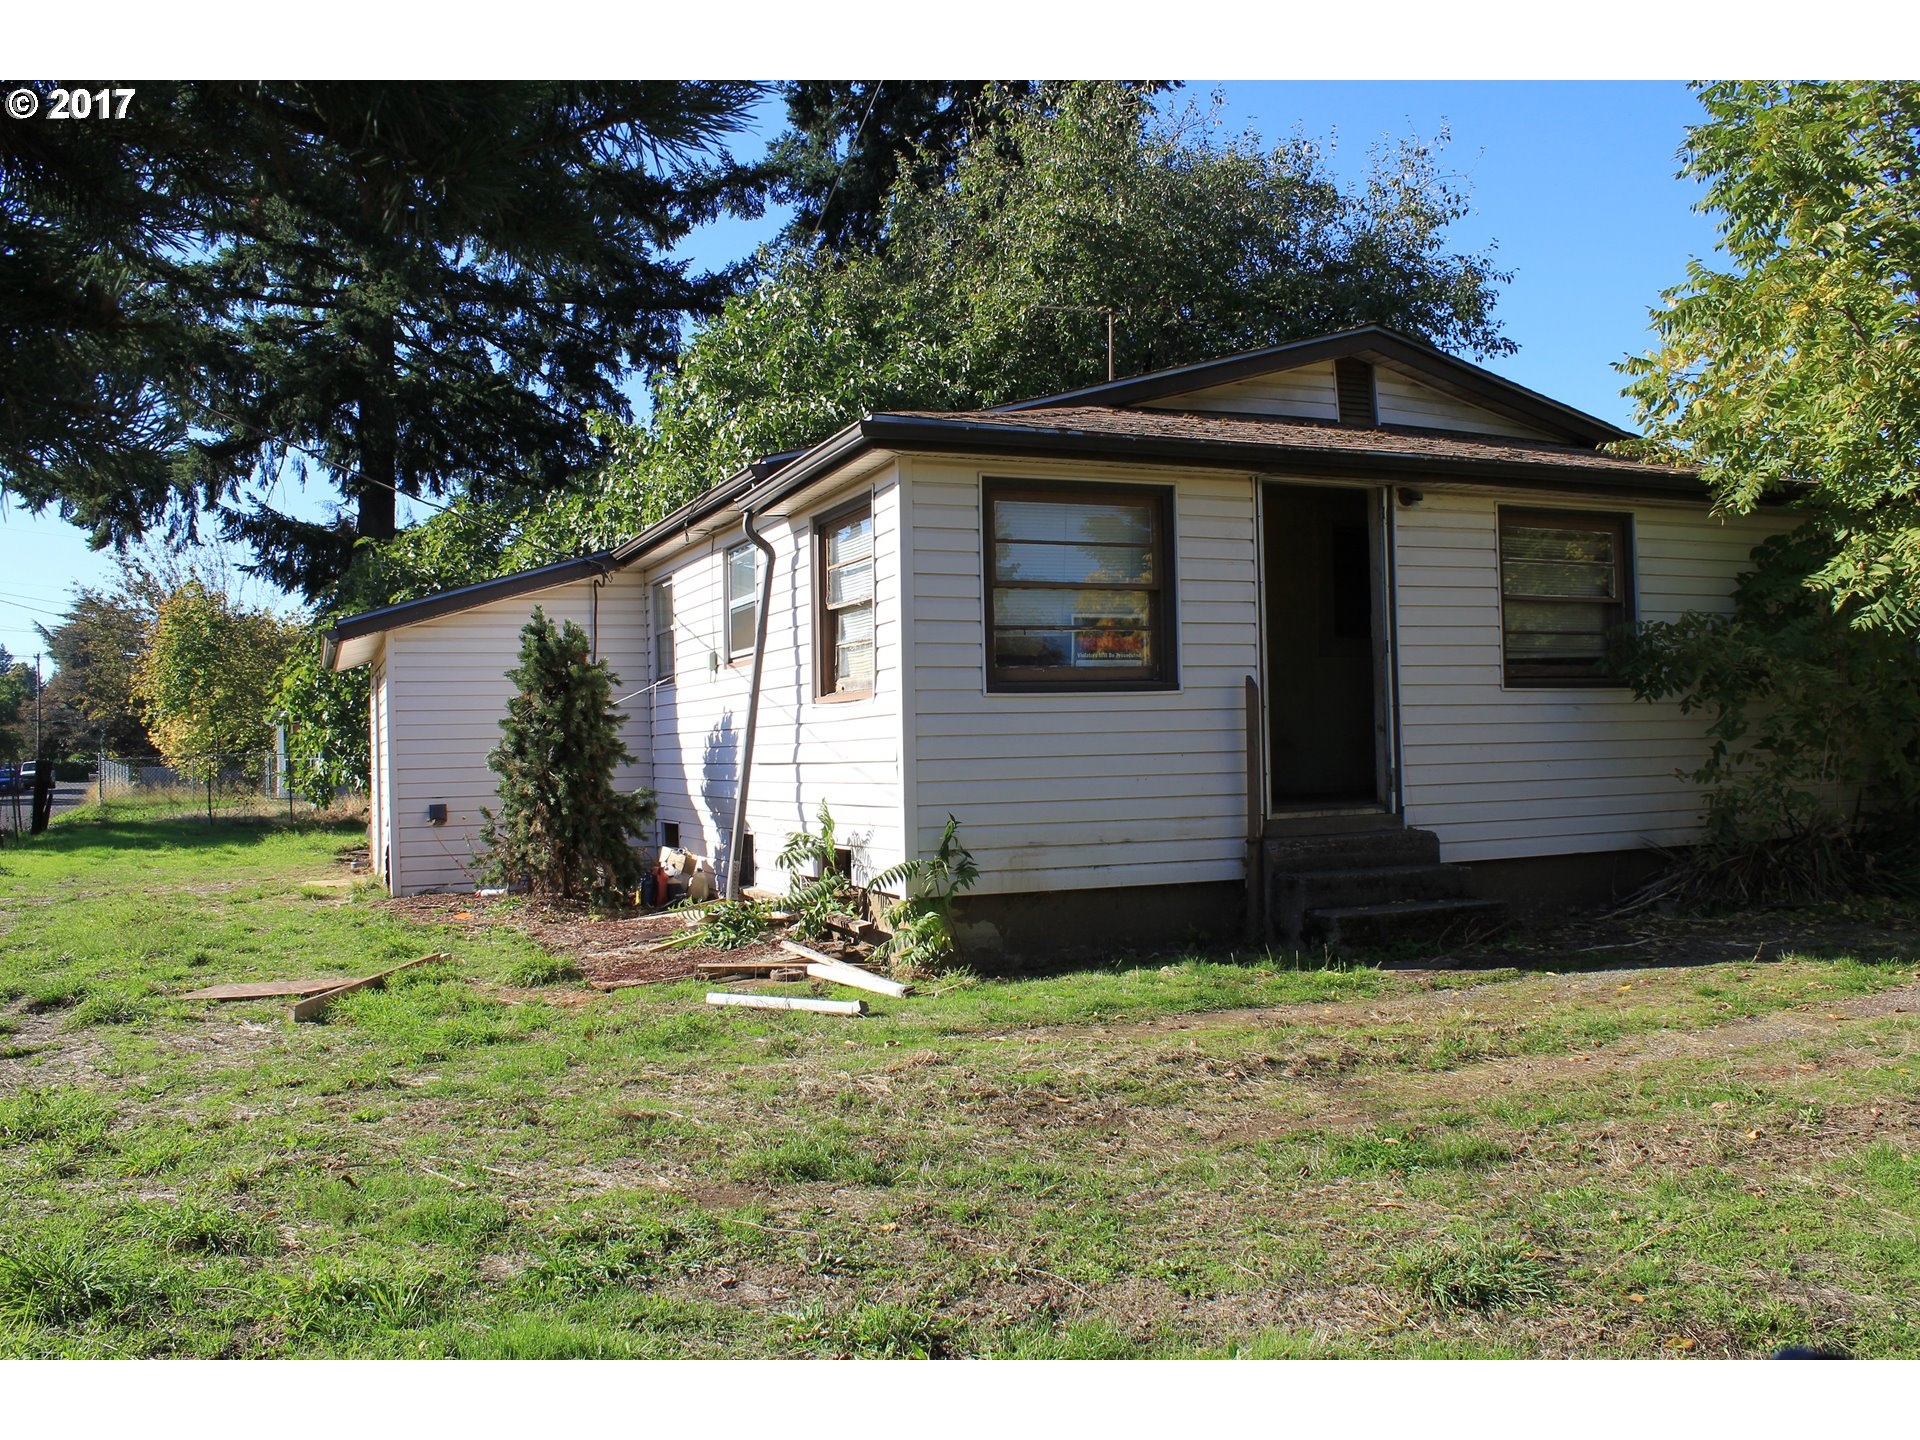 1700 sq. ft 2 bedrooms 1 bathrooms  House For Sale, Portland, OR